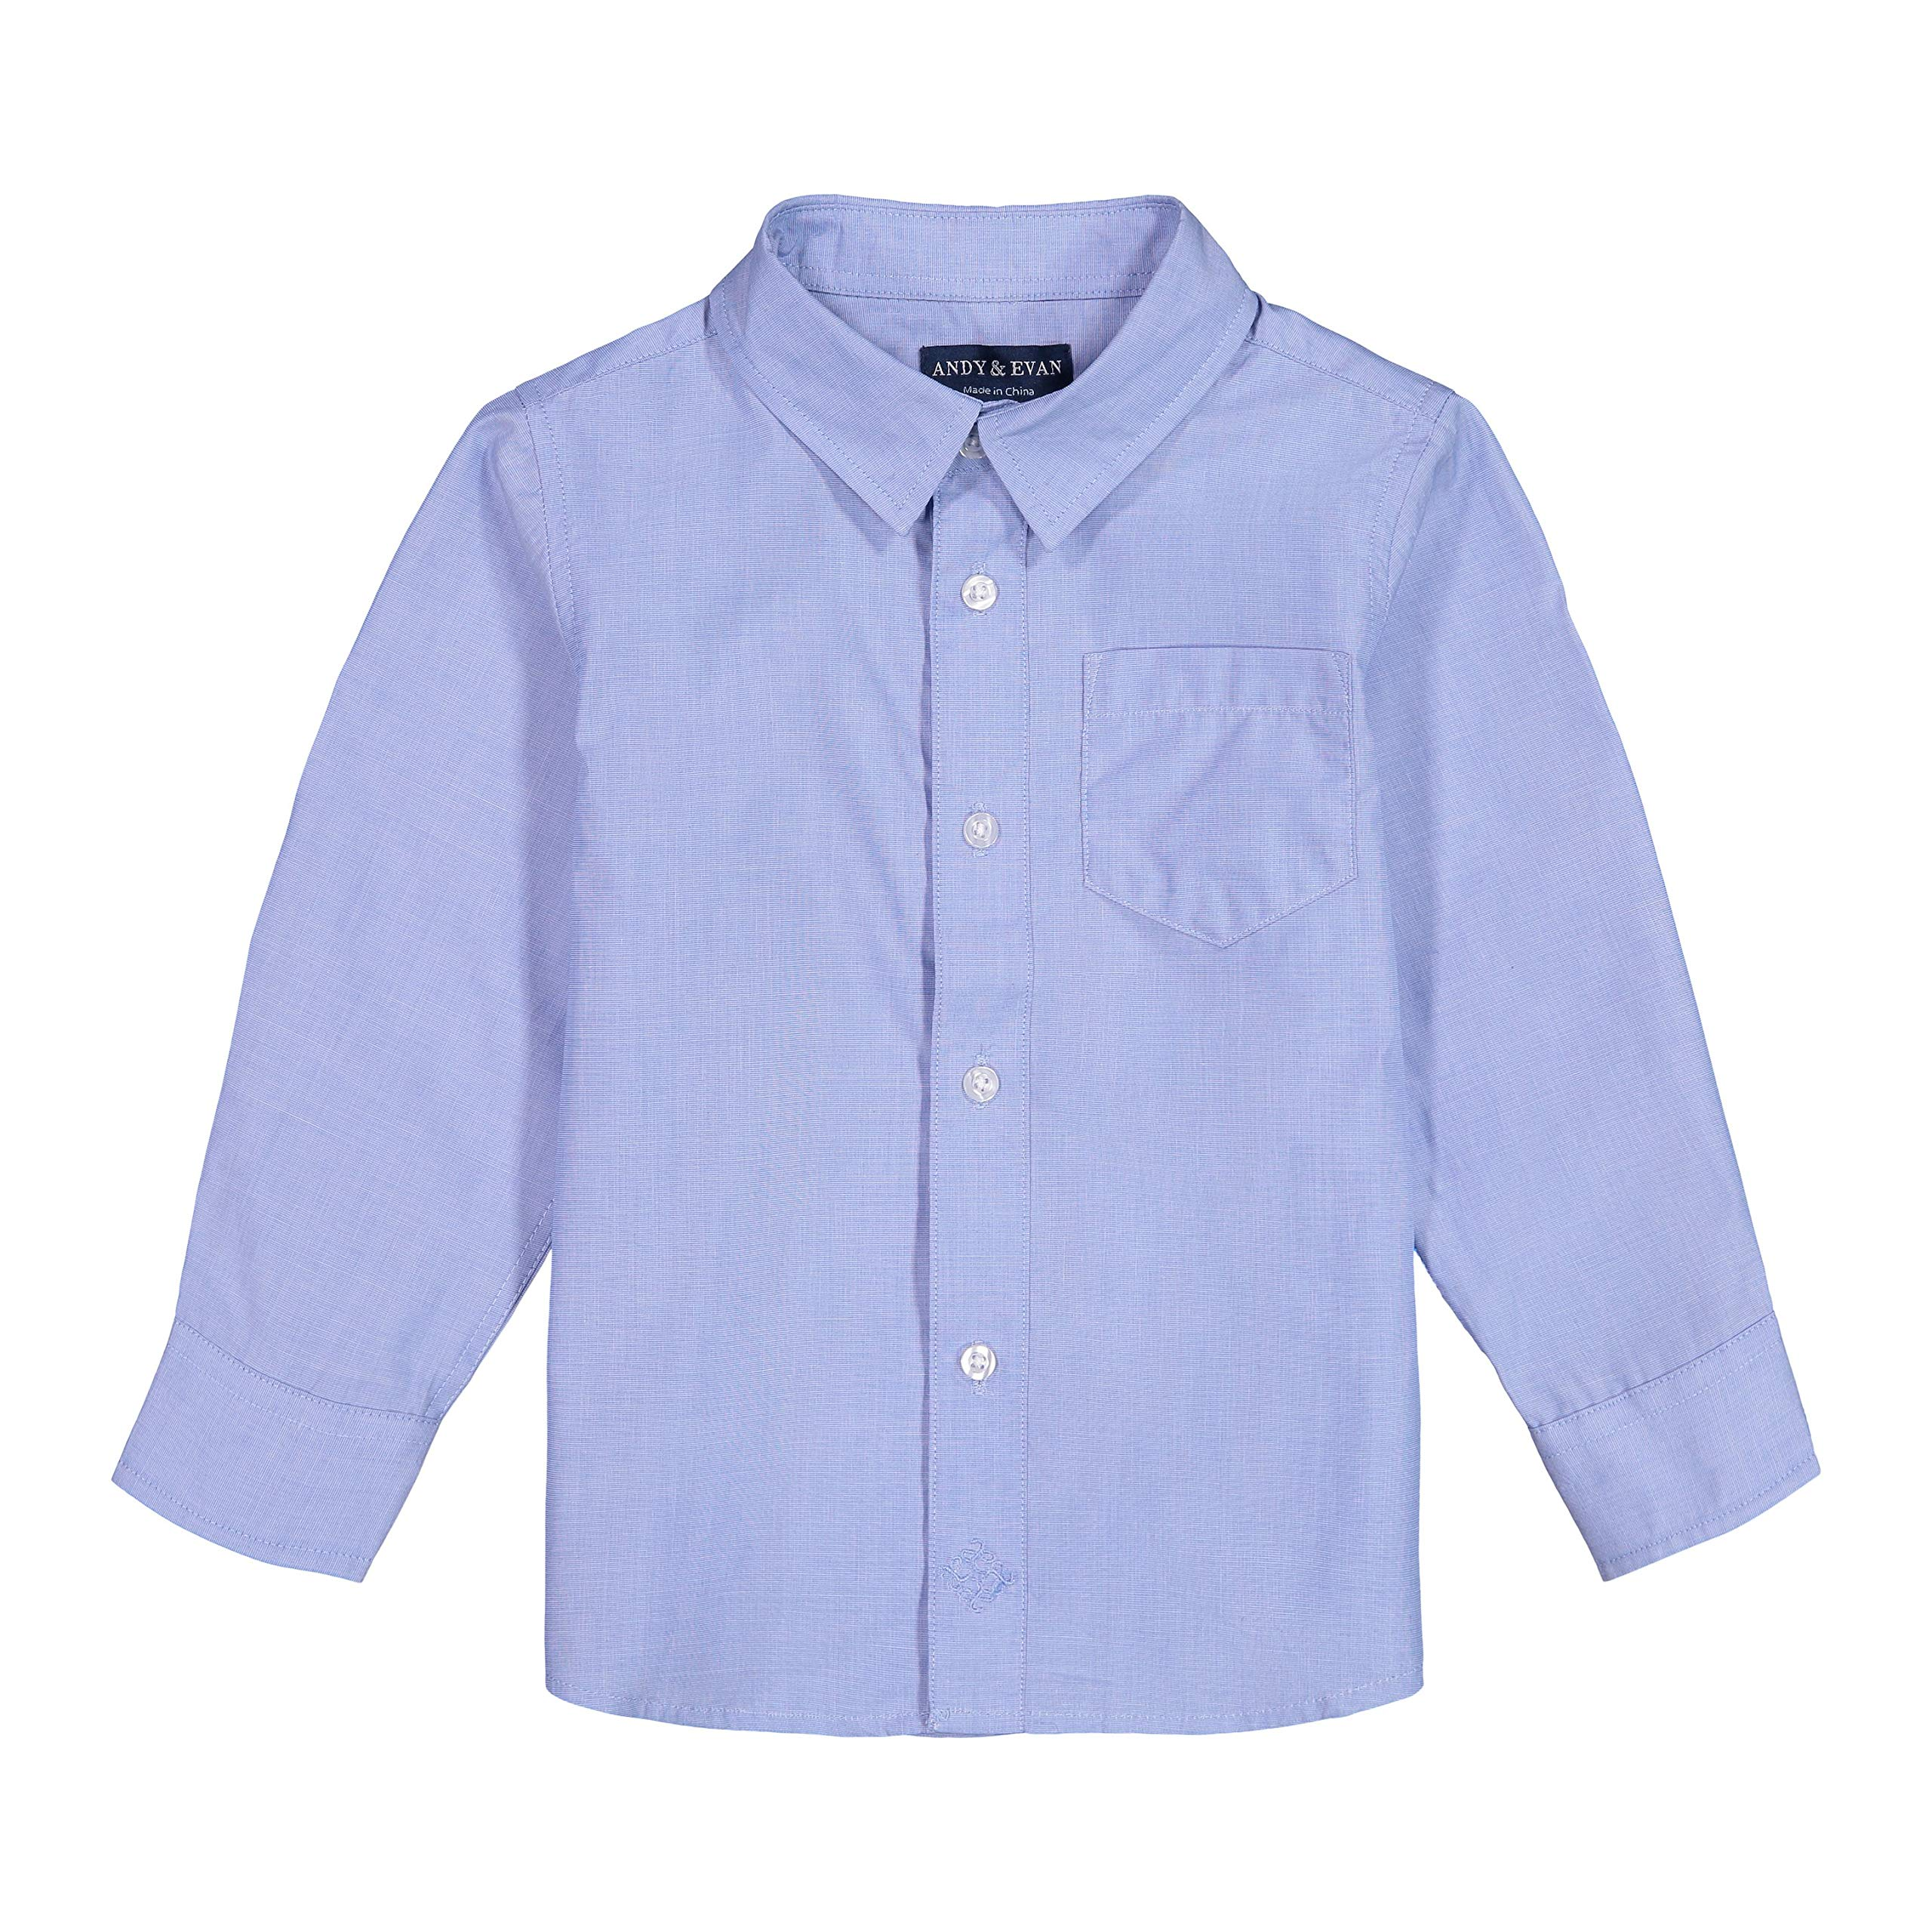 Andy & Evan Toddler & Boys' Classic Long Sleeve Button Down Shirt by Andy & Evan